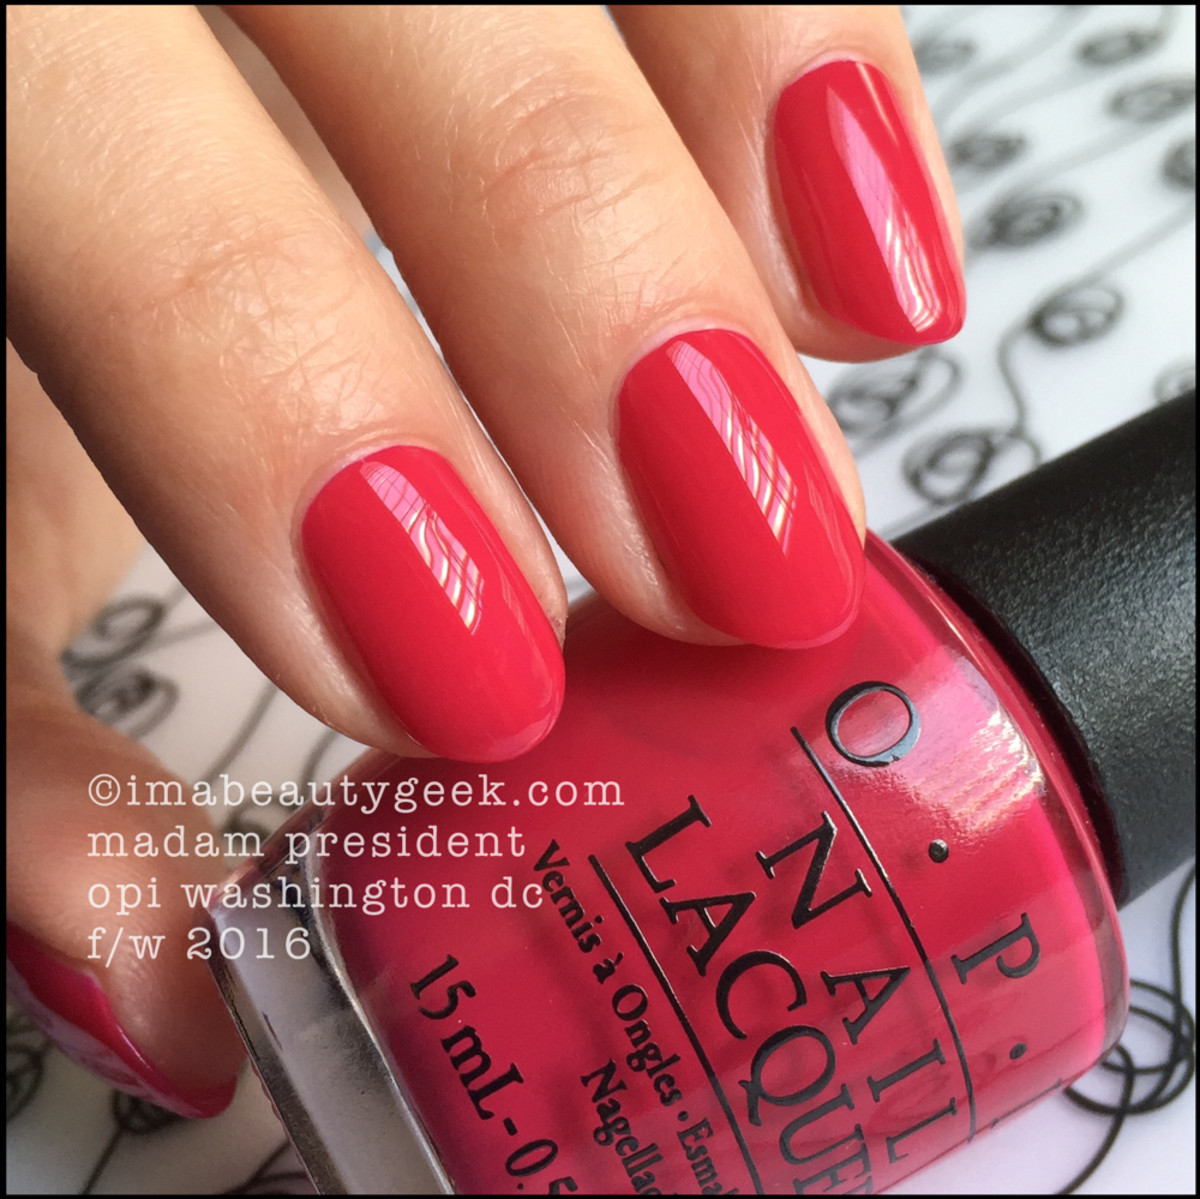 OPI Madam President_OPI Washington DC Collection Swatches Review Kerry Washington